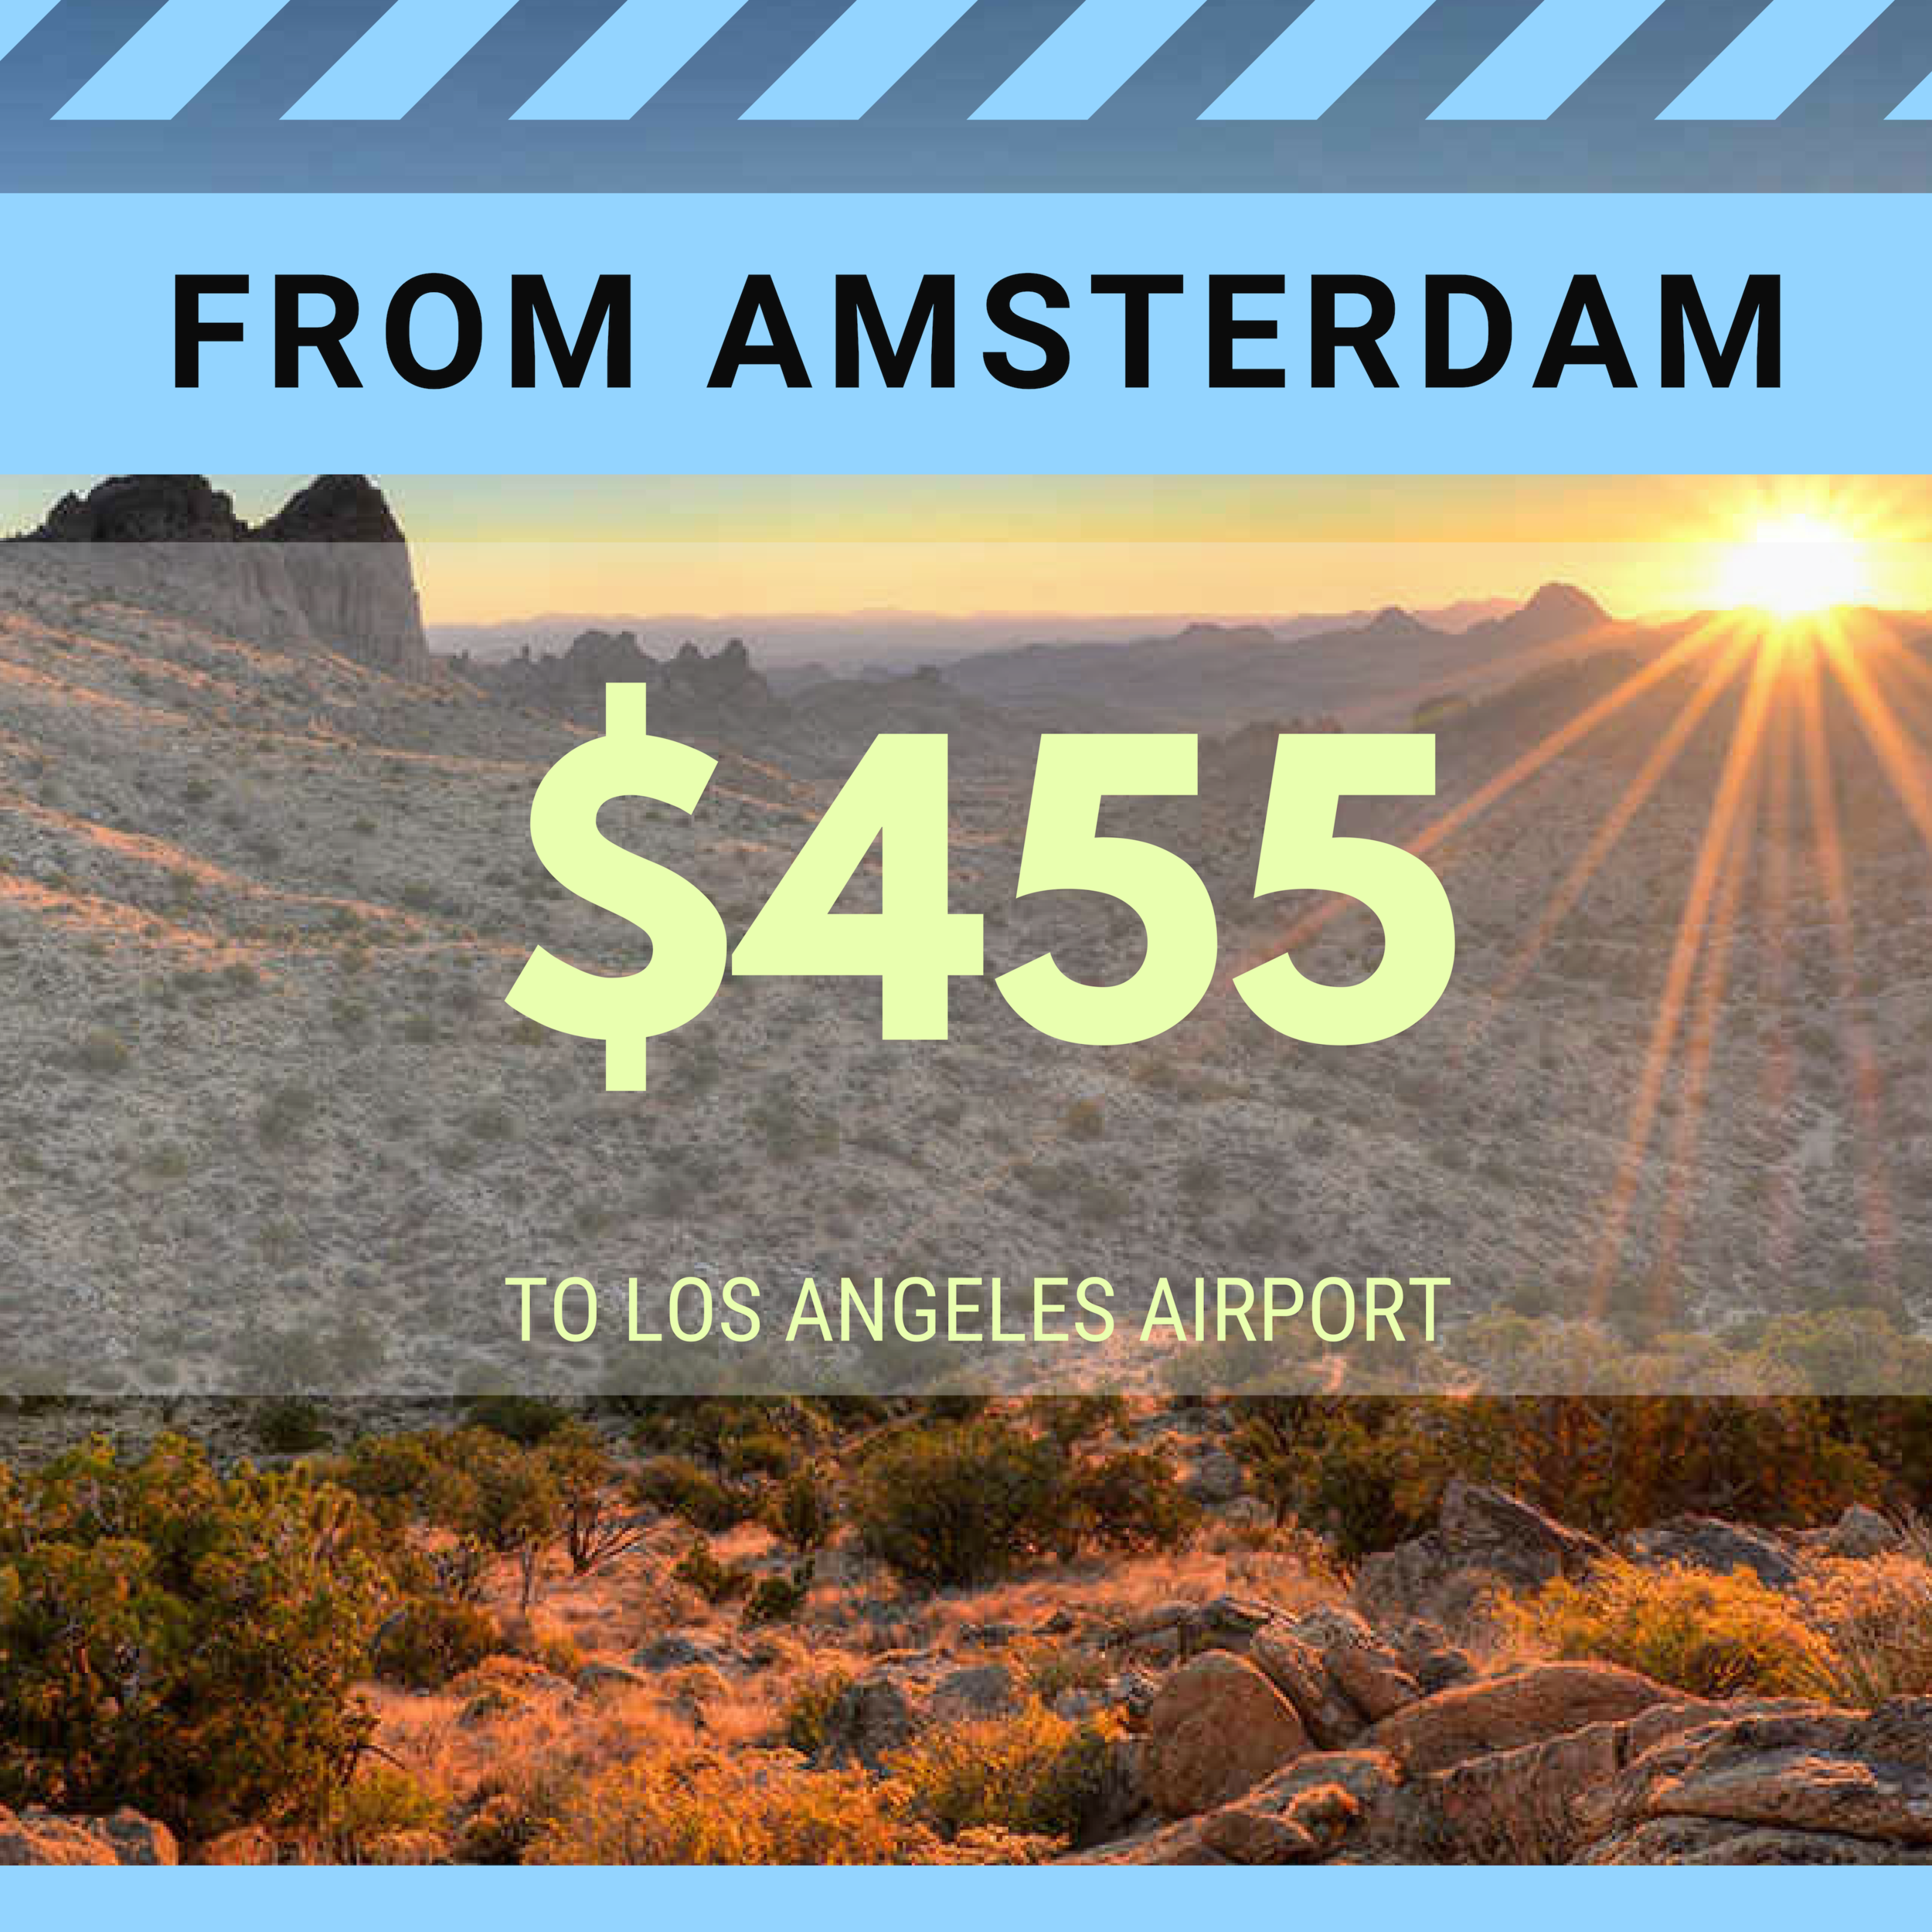 FROM AMSTERDAM TO LAX